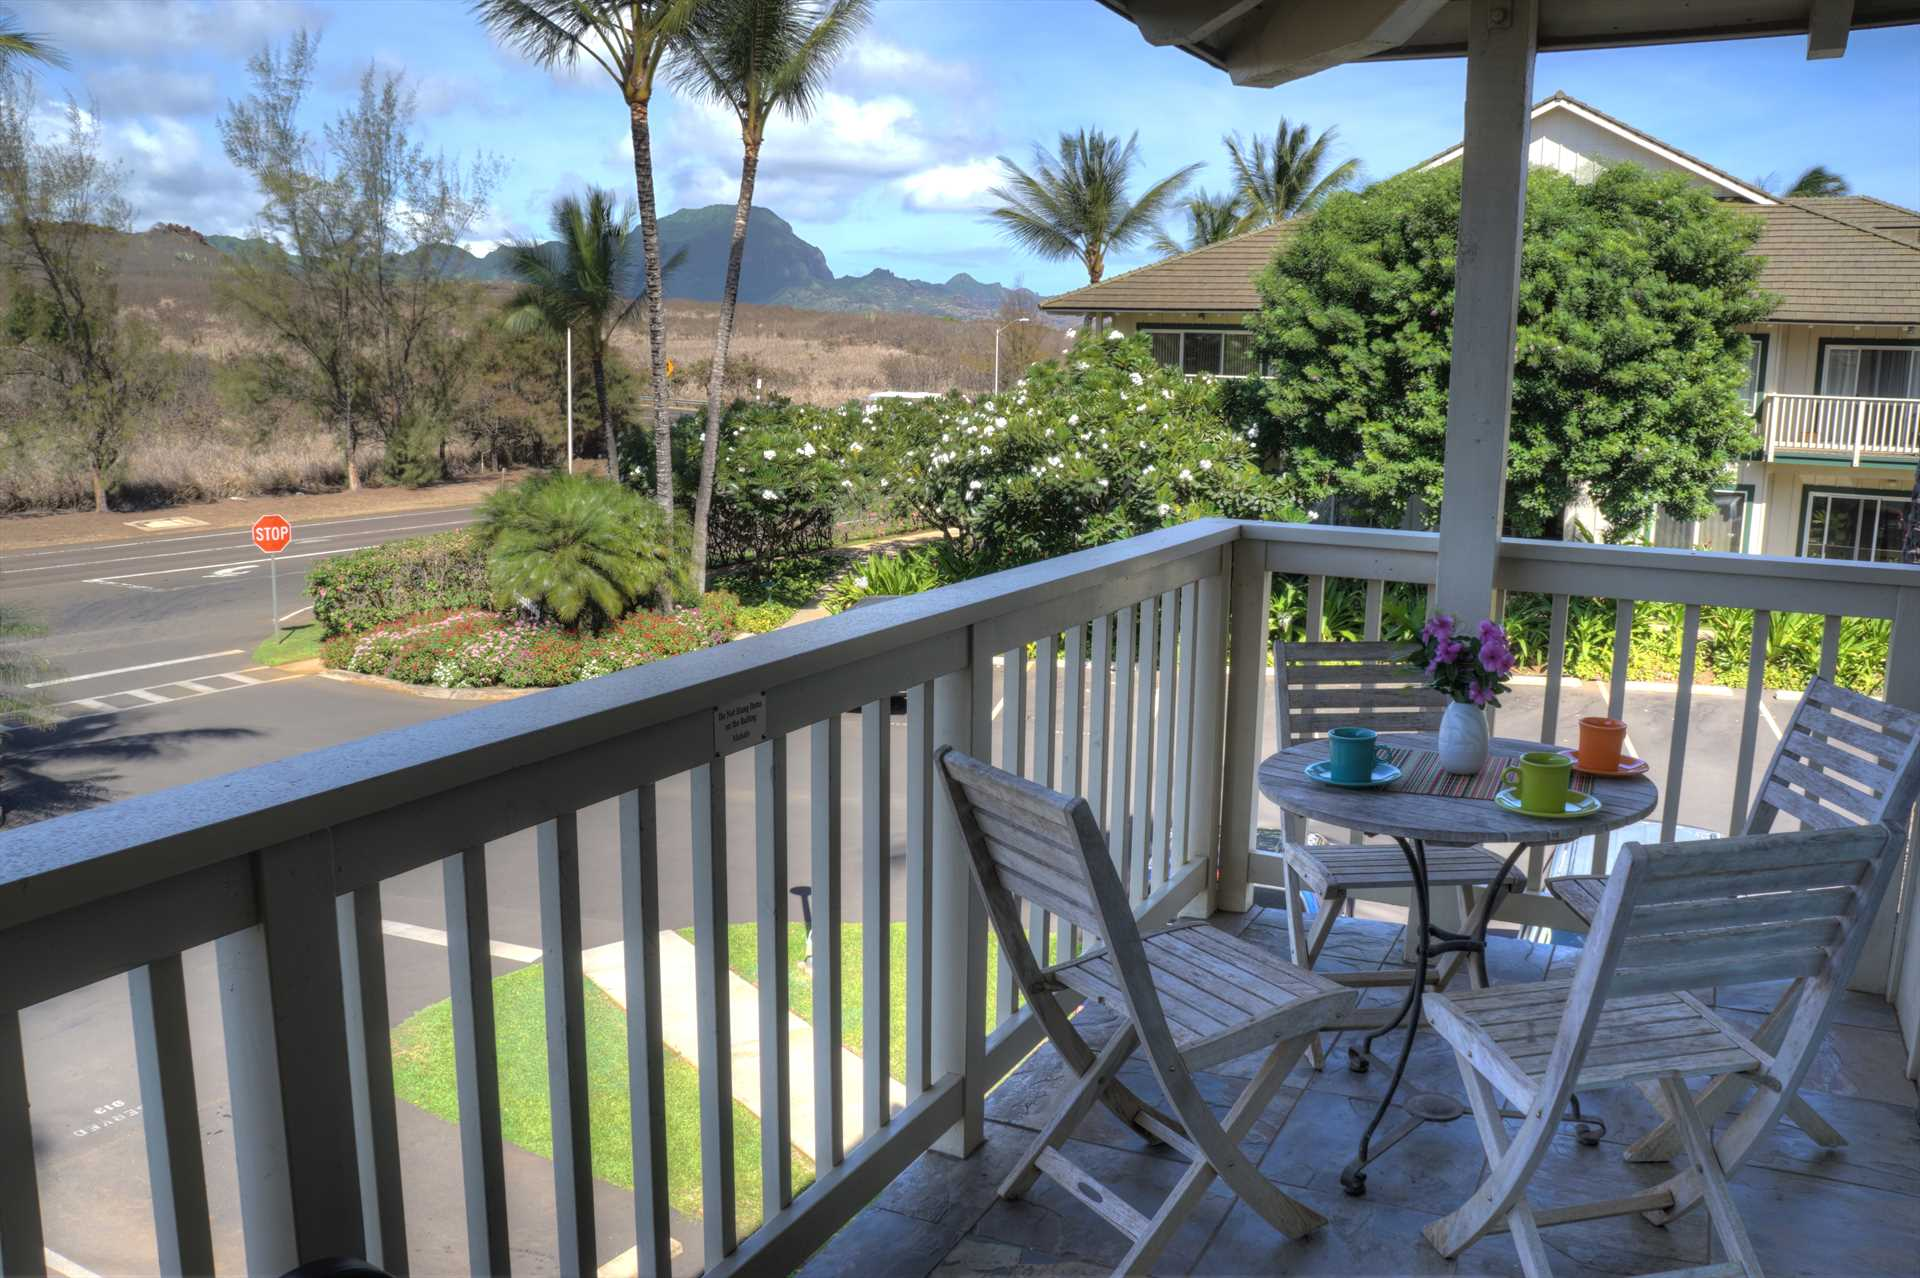 This is the view from the living room lanai. The mountain range in the distance is the Ha'upu range.